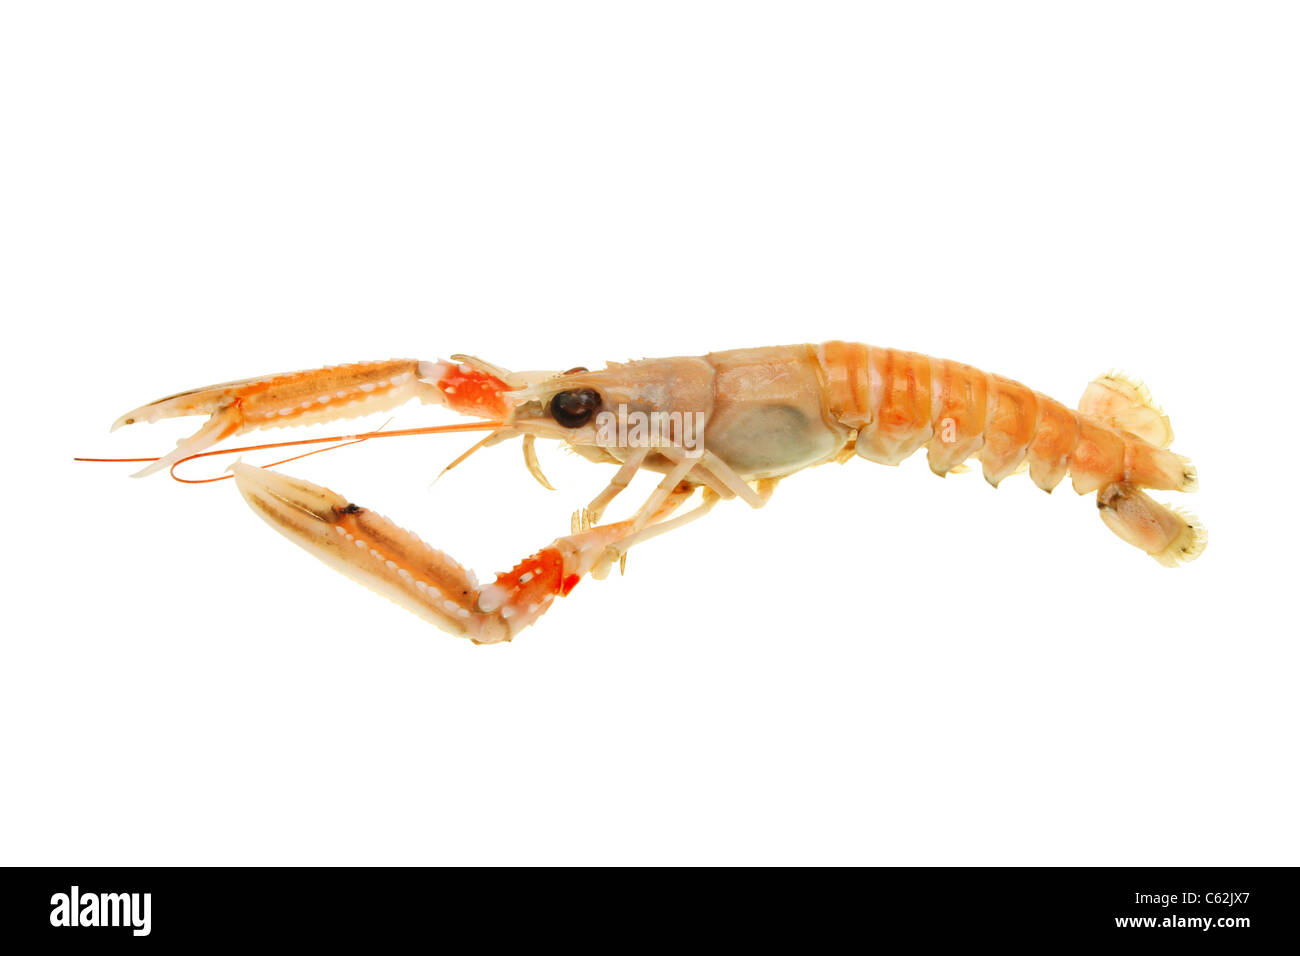 Side view of a langoustine, also known as Norway lobster, Dublin bay prawn or scampi isolated against white - Stock Image